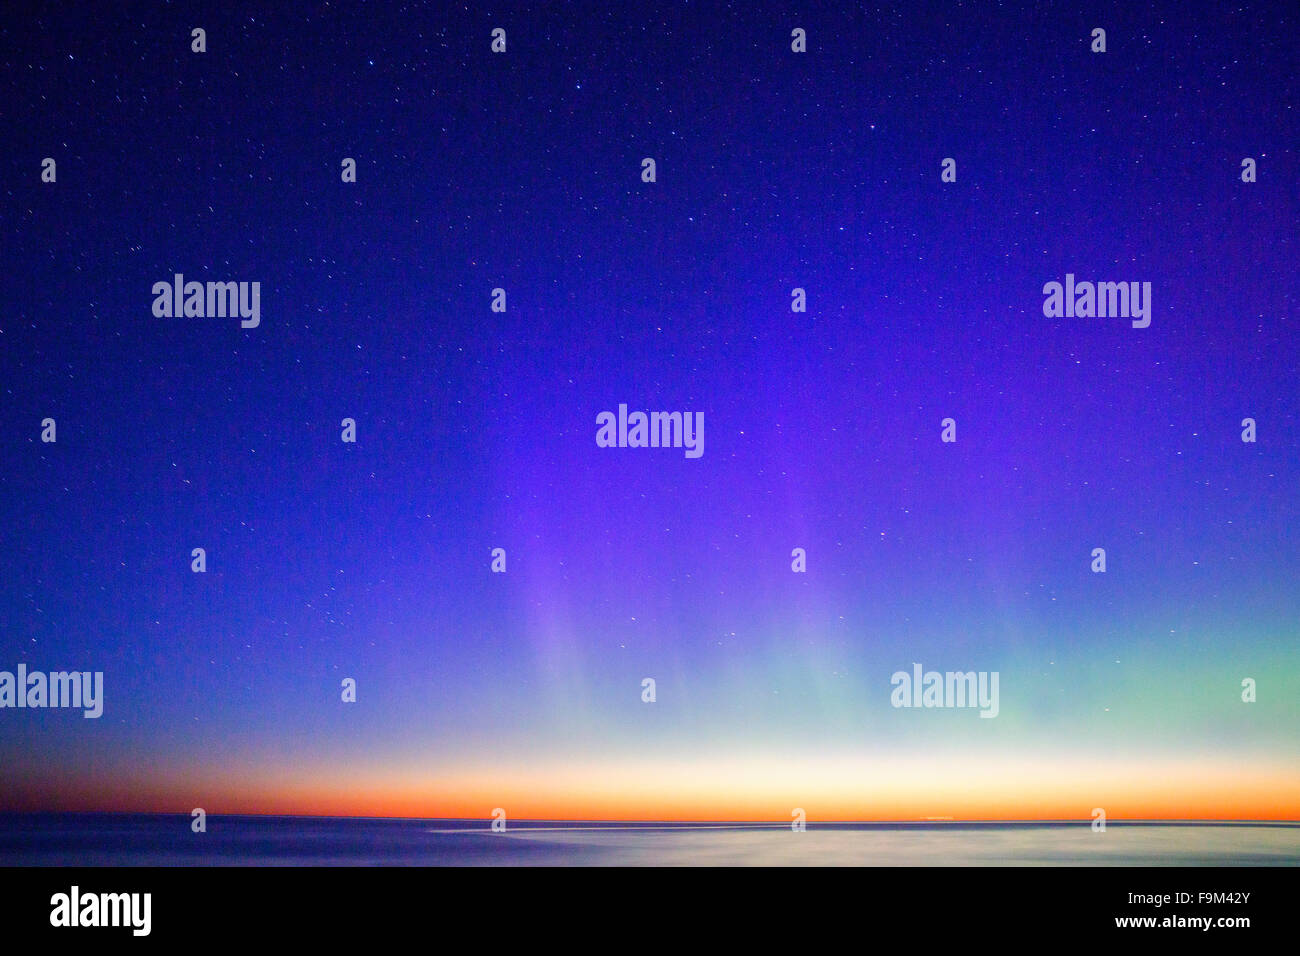 Aurora Borealis reaching the deep blue sky - Stock Image